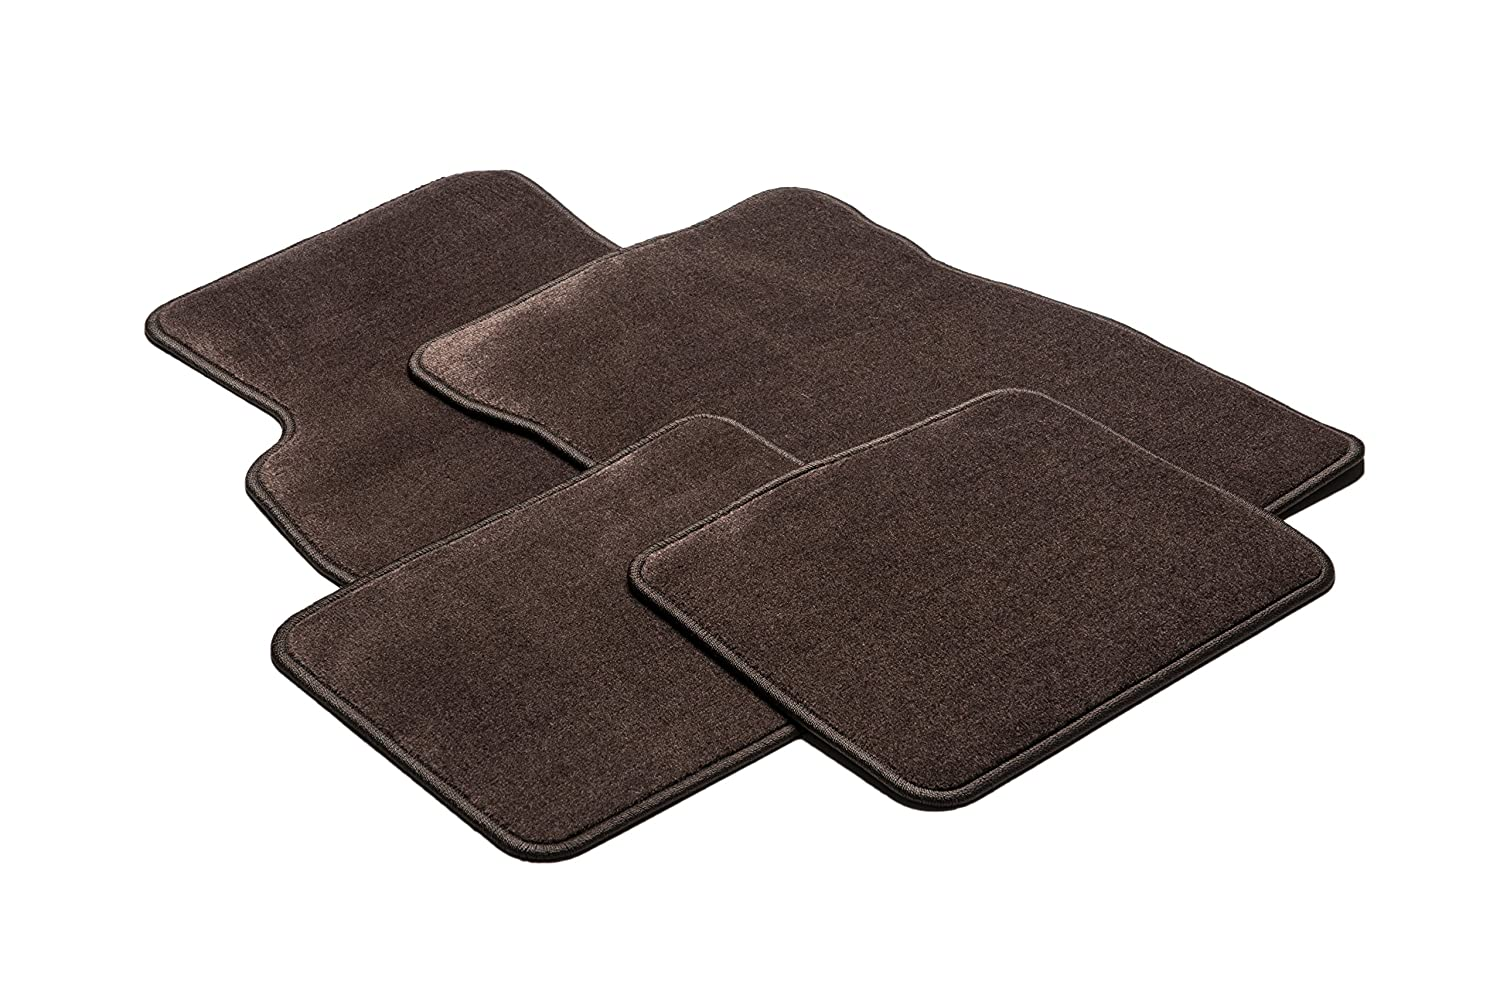 GM Accessories 25839550 Front and Rear Carpet Floor Mats in Cocoa General Motors